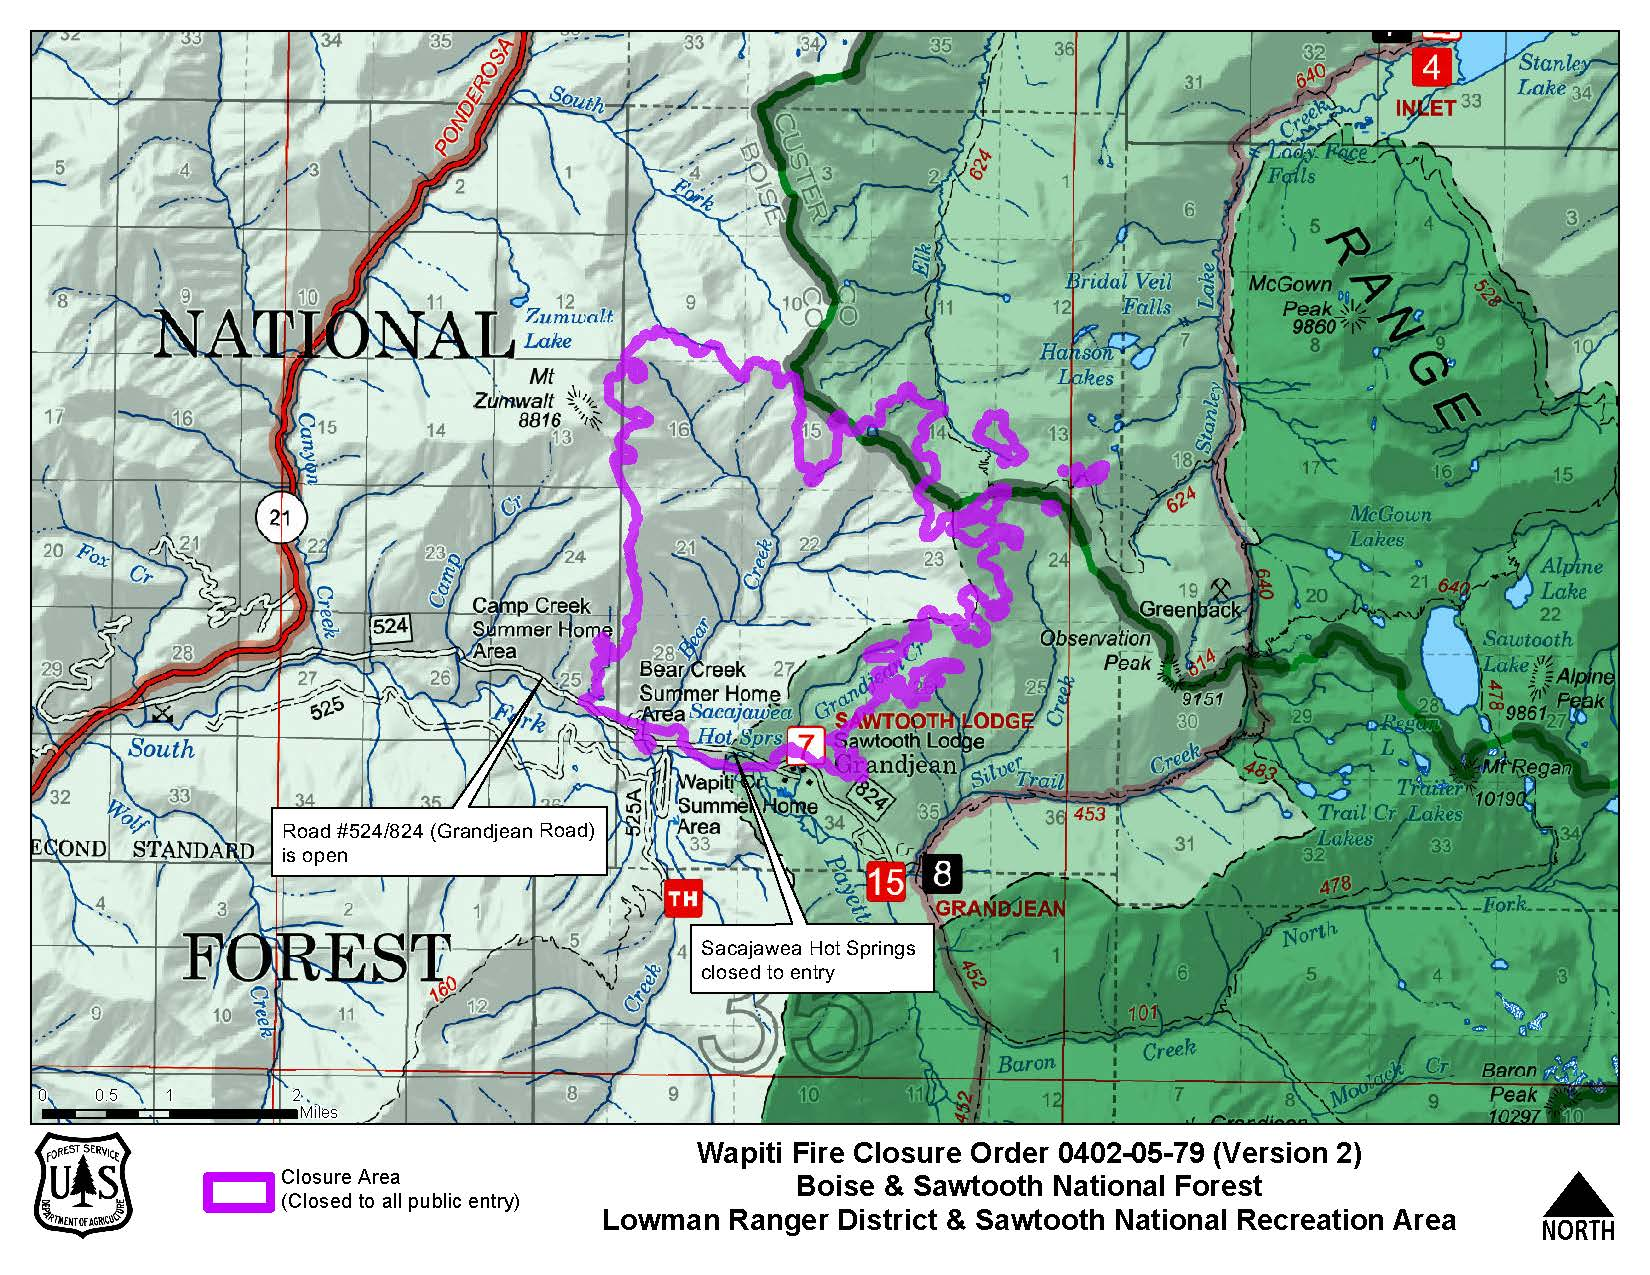 Boise National Forest - Alerts & Notices